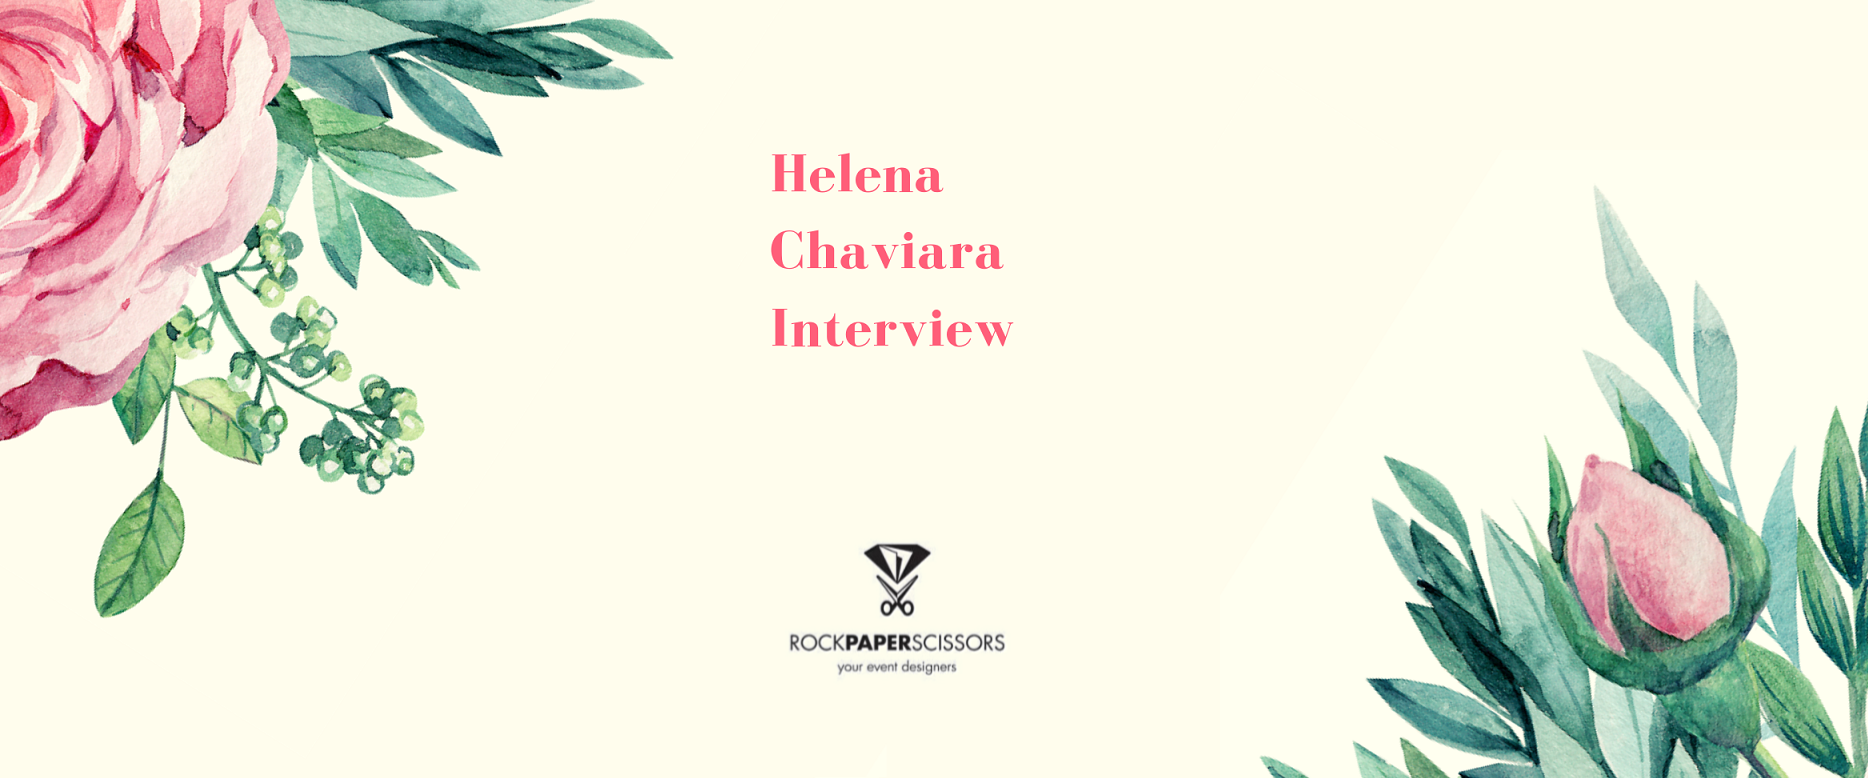 Helena Chaviara Interview